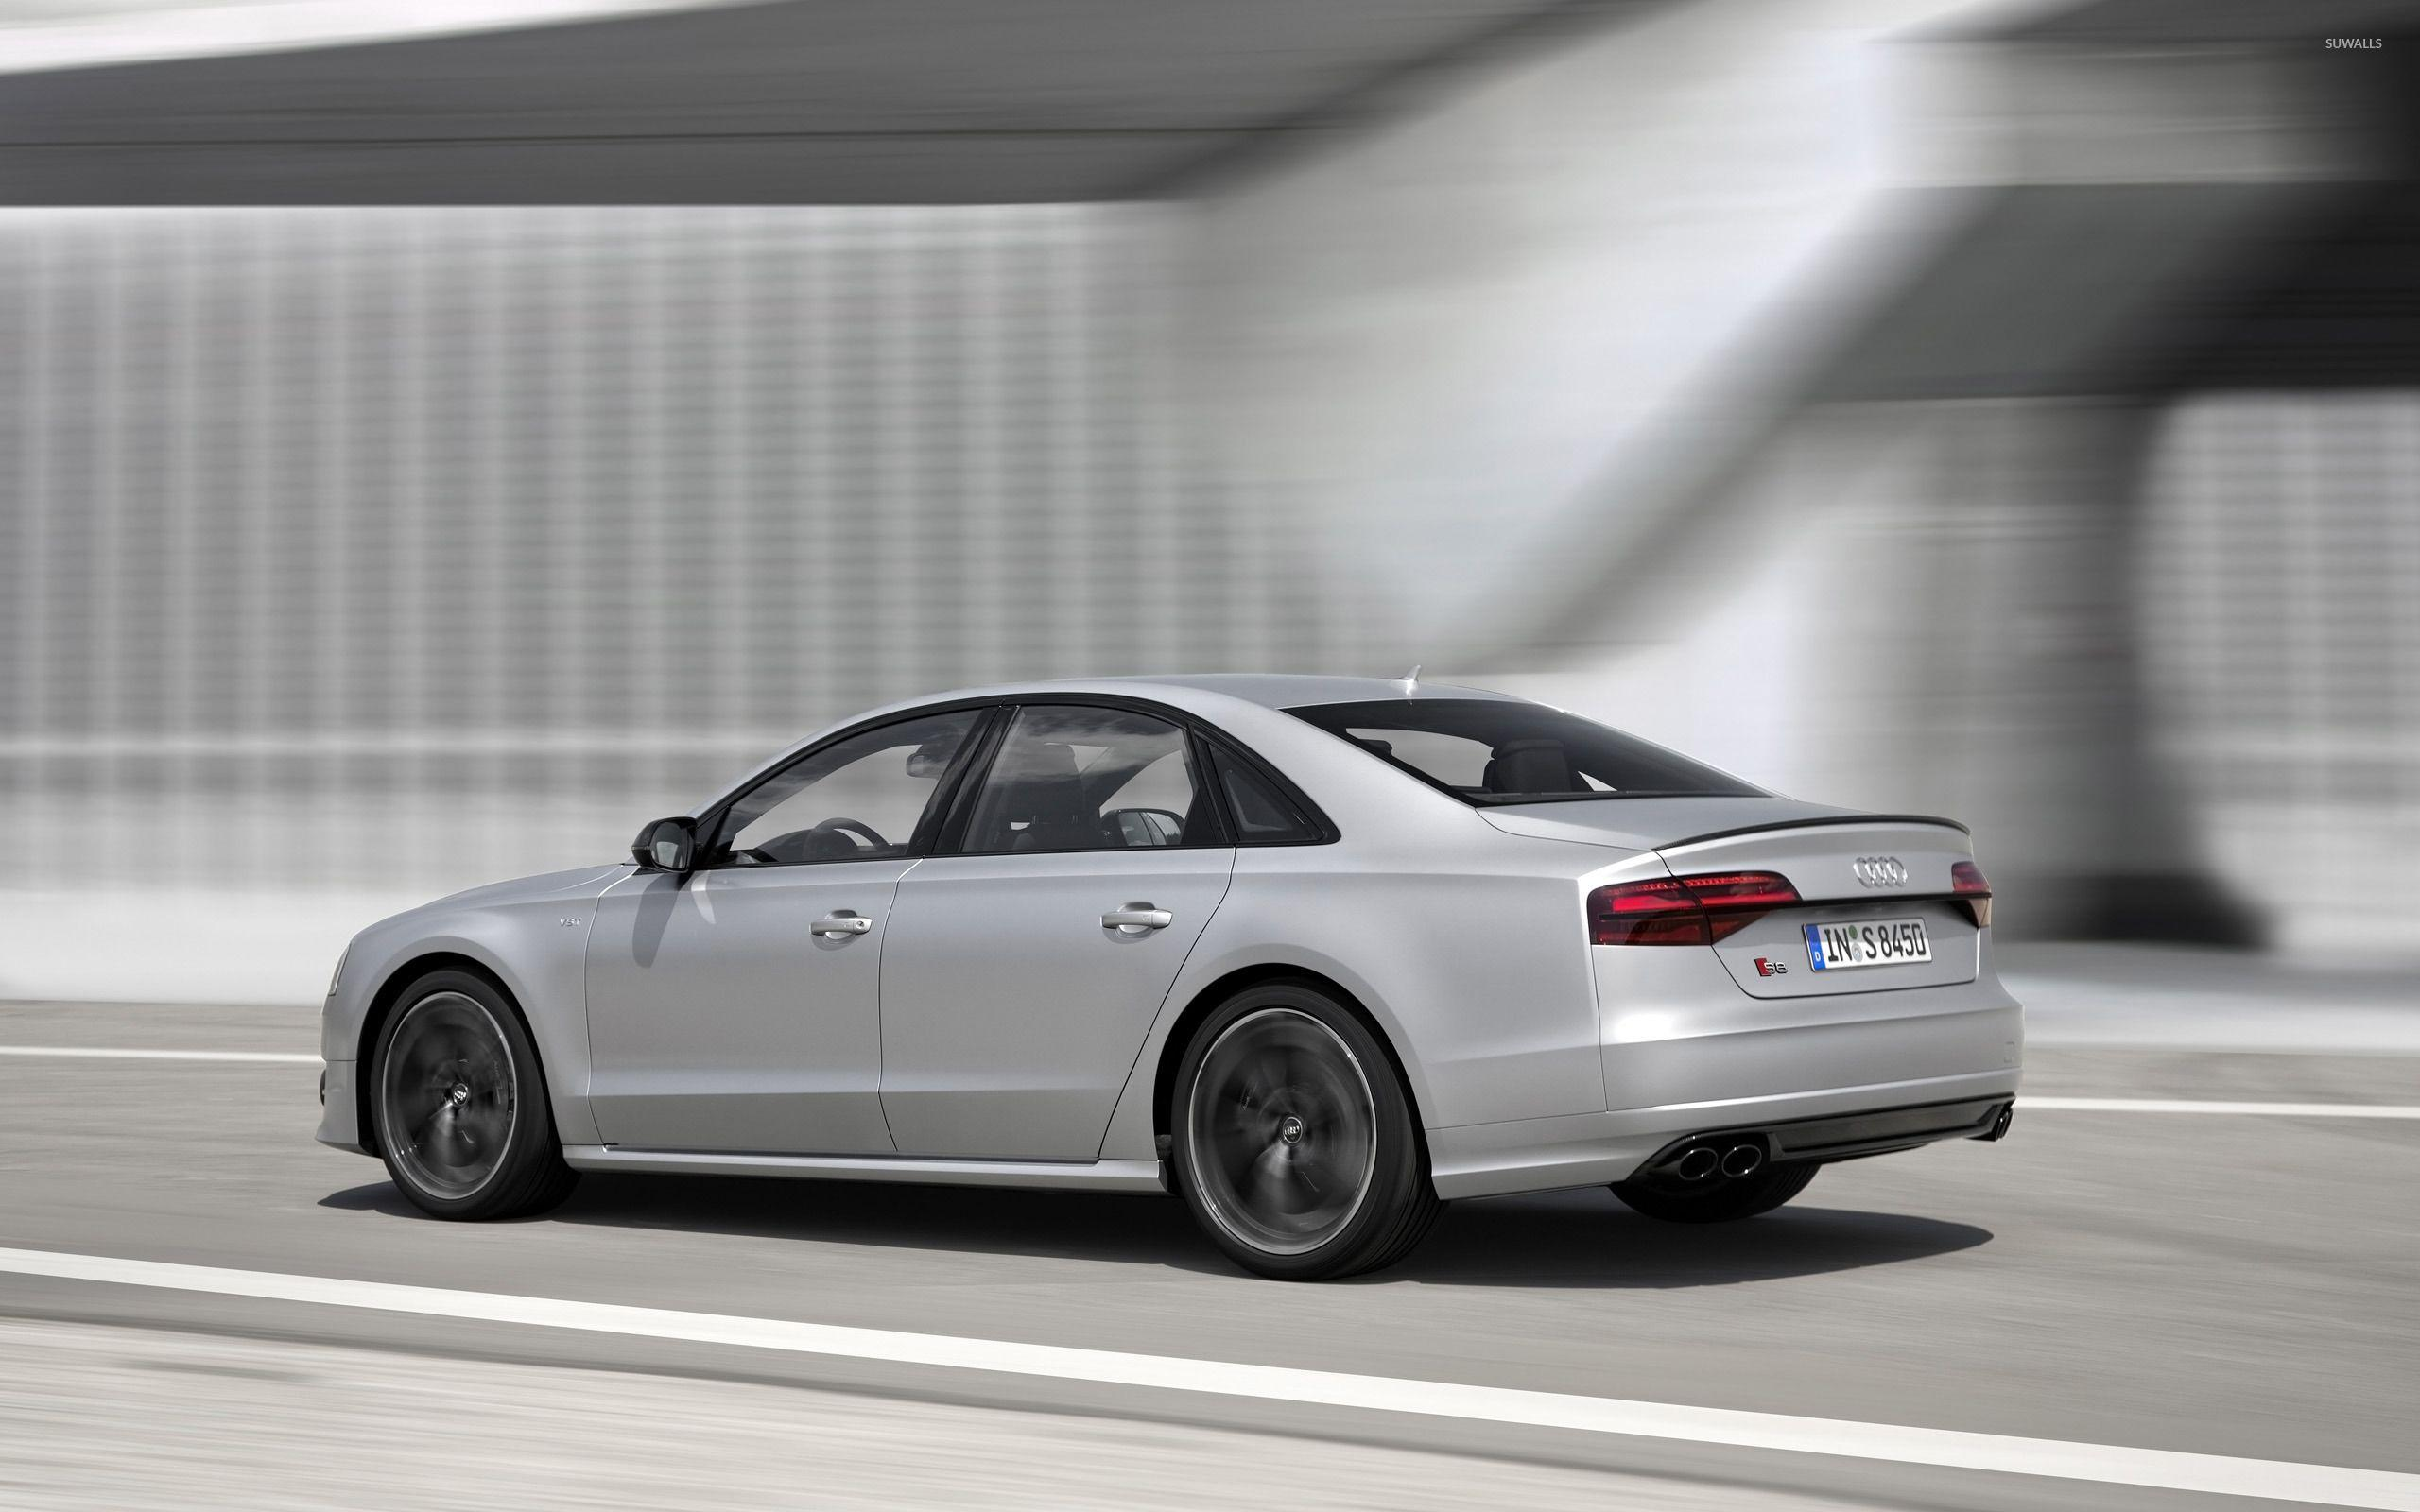 2016 Audi S8 side view [2] wallpapers